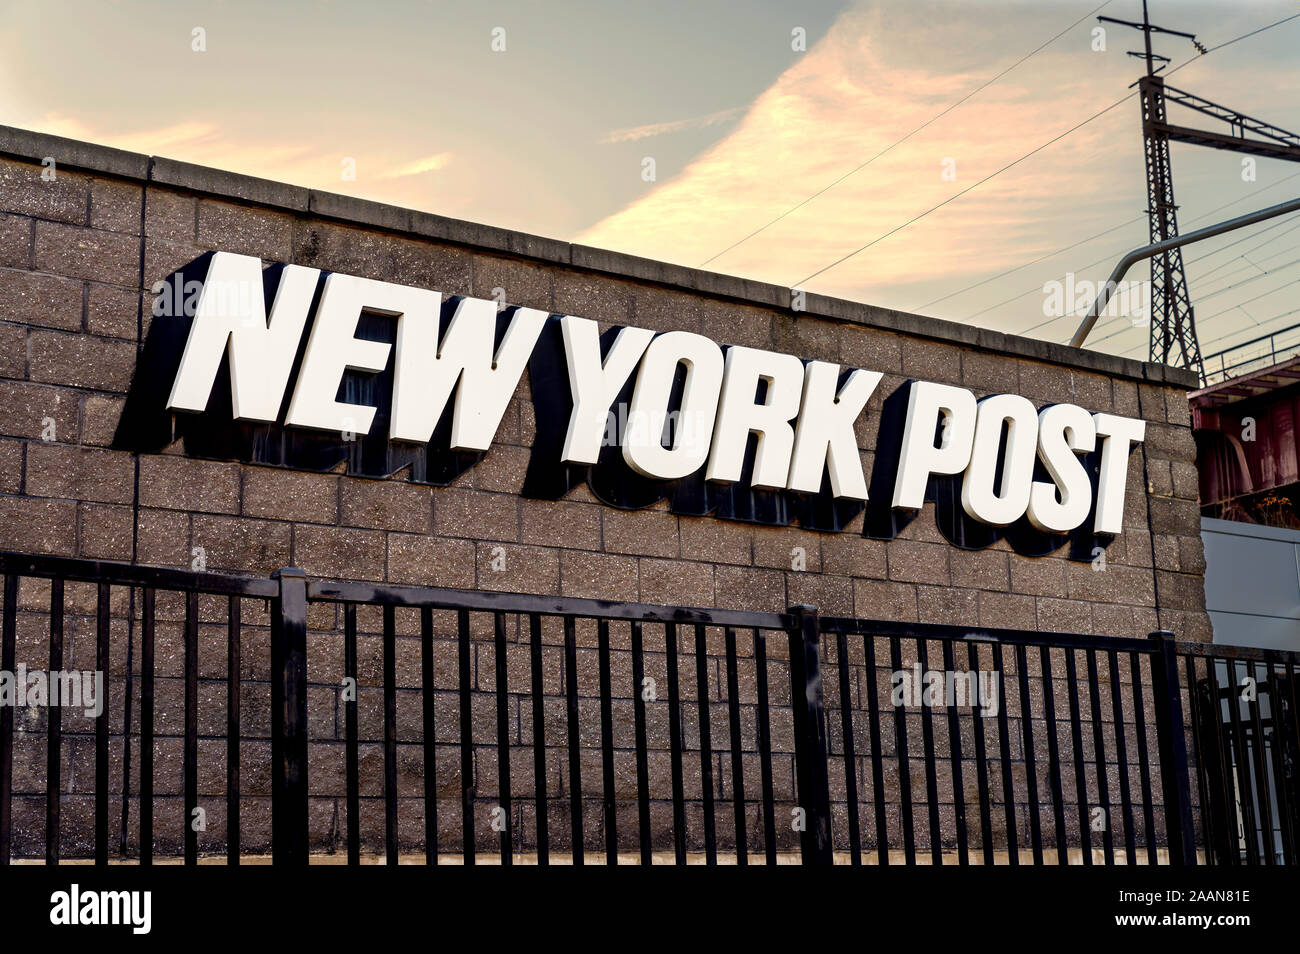 Bronx, NY/USA - 11/09/2019: The New York Post Building on East 132nd Street in the Bronx Stock Photo